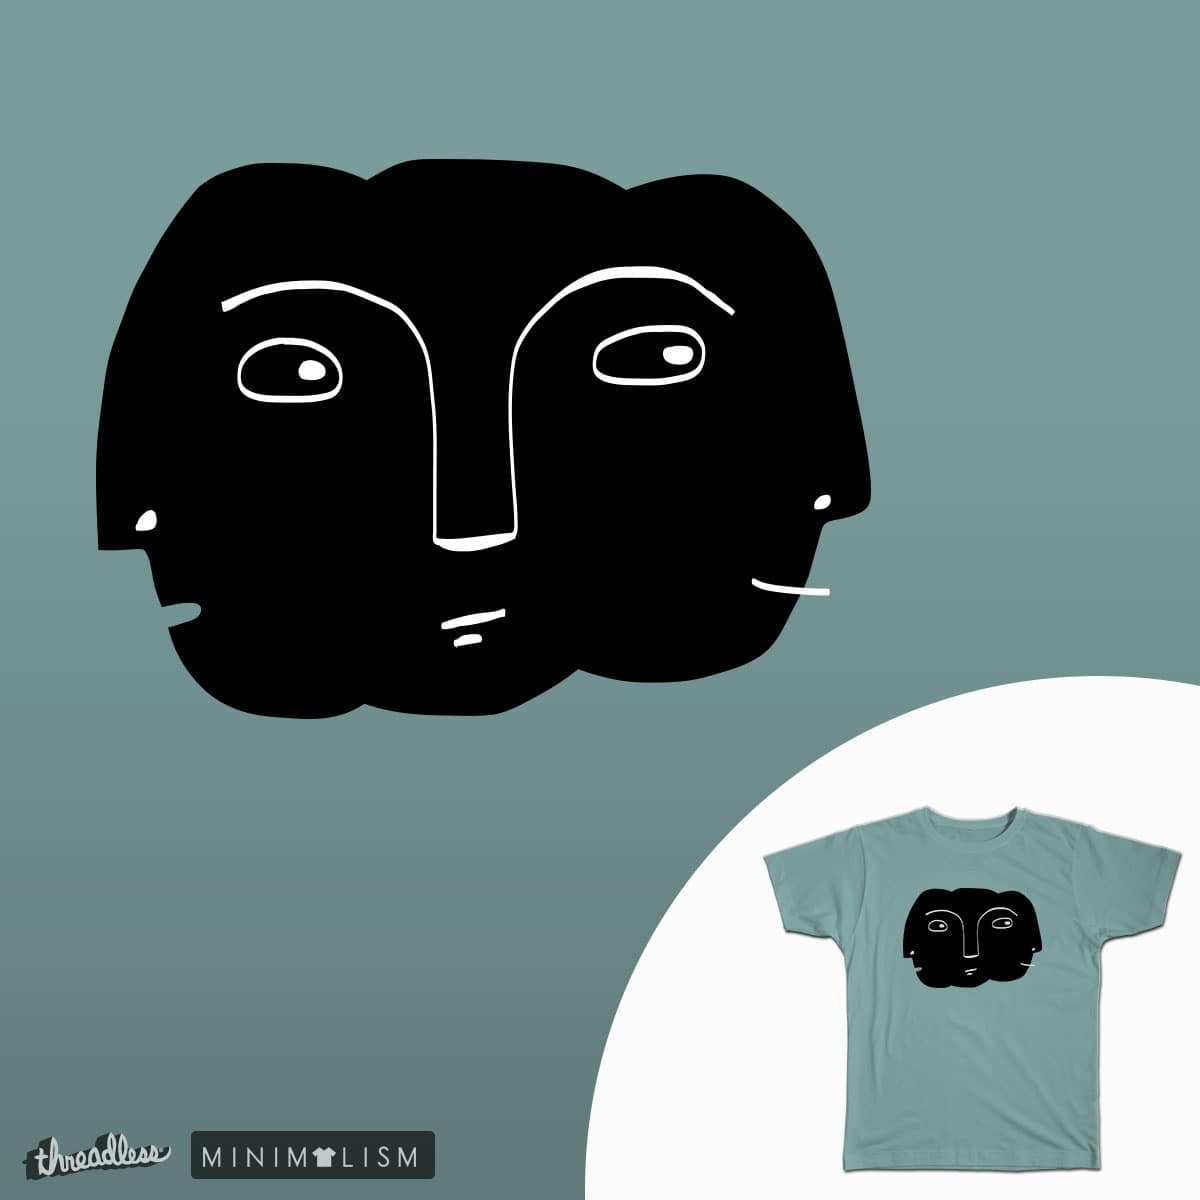 we by PabloGallego on Threadless